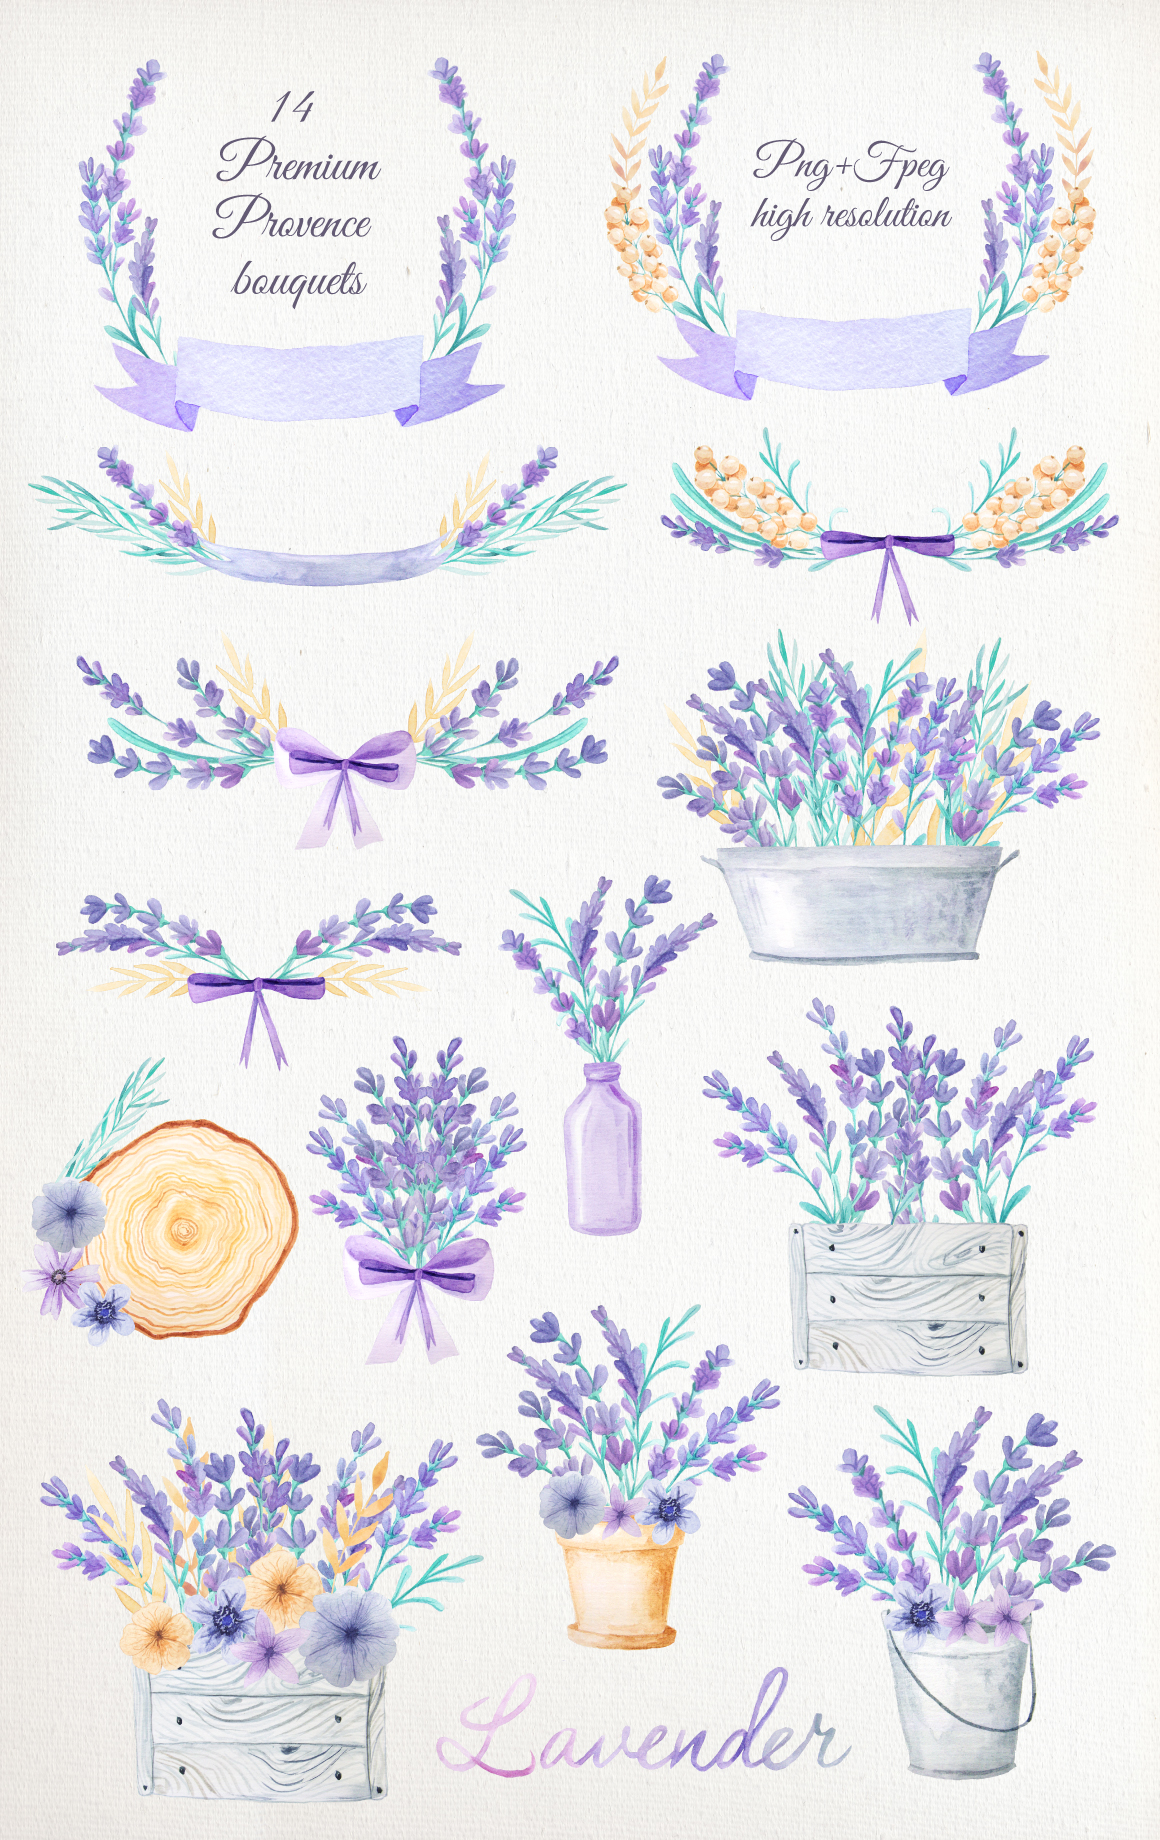 Watercolor Lavender Design Pack example image 5